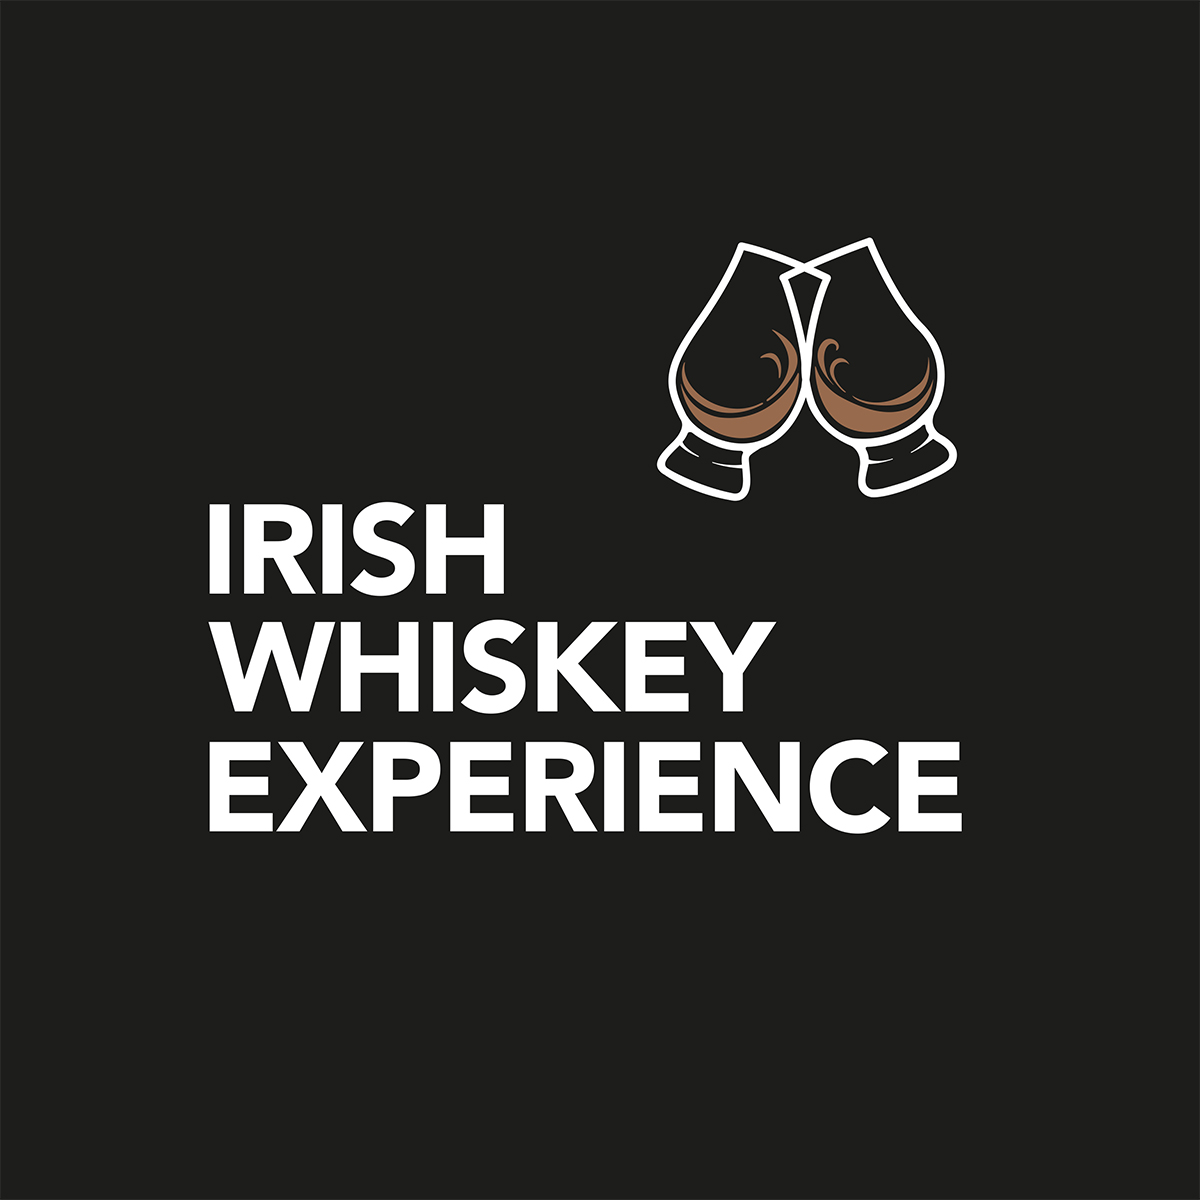 Irish Whiskey Experience Logo